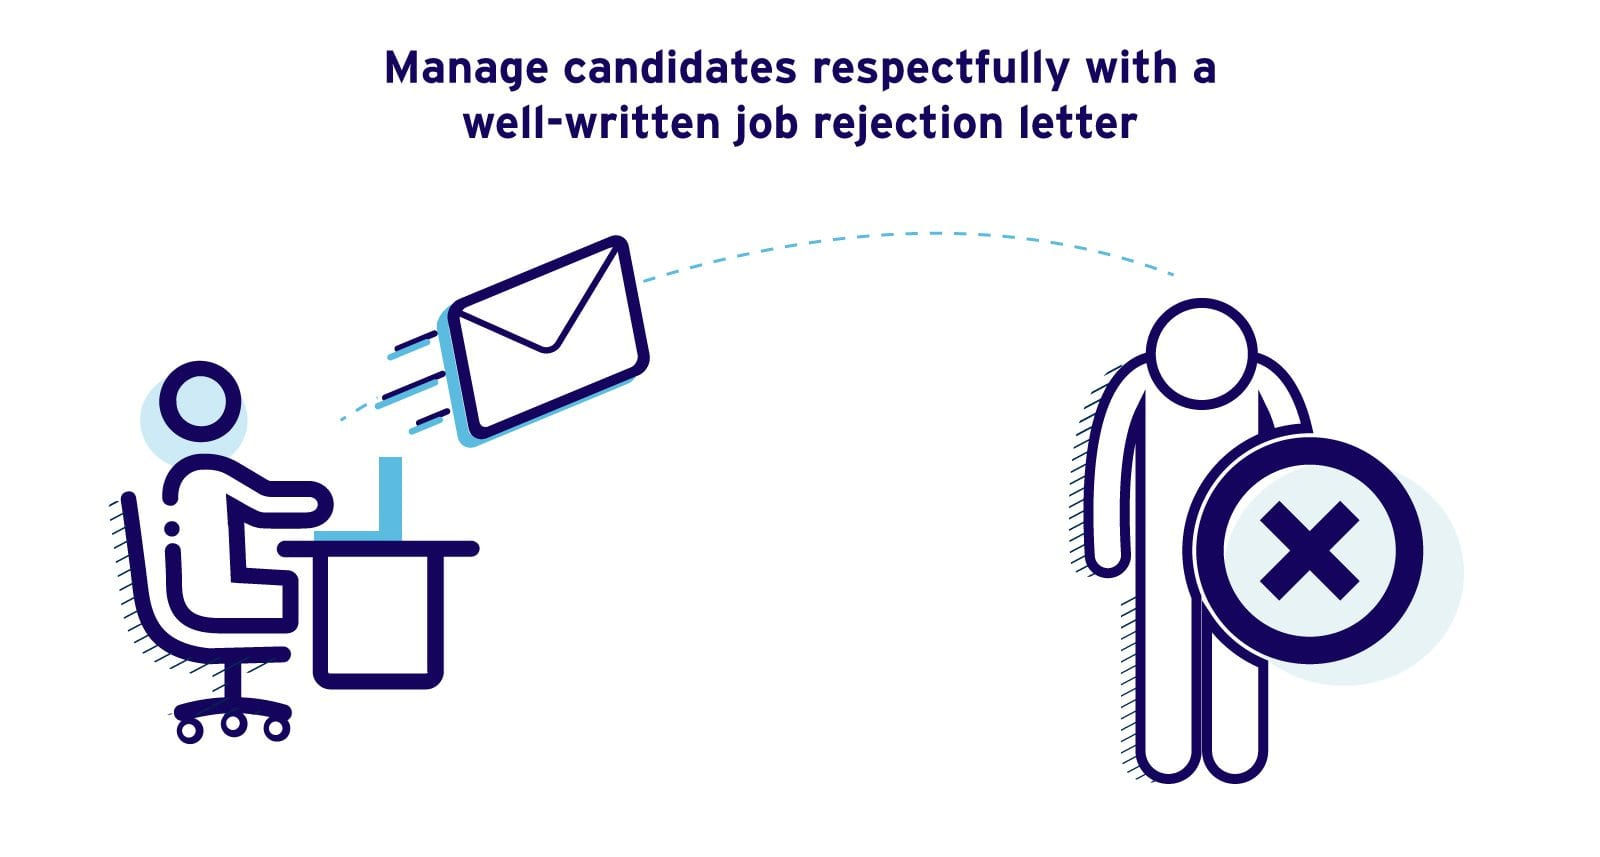 Job rejection letter sample for unsuccessful candidates maxwellsz